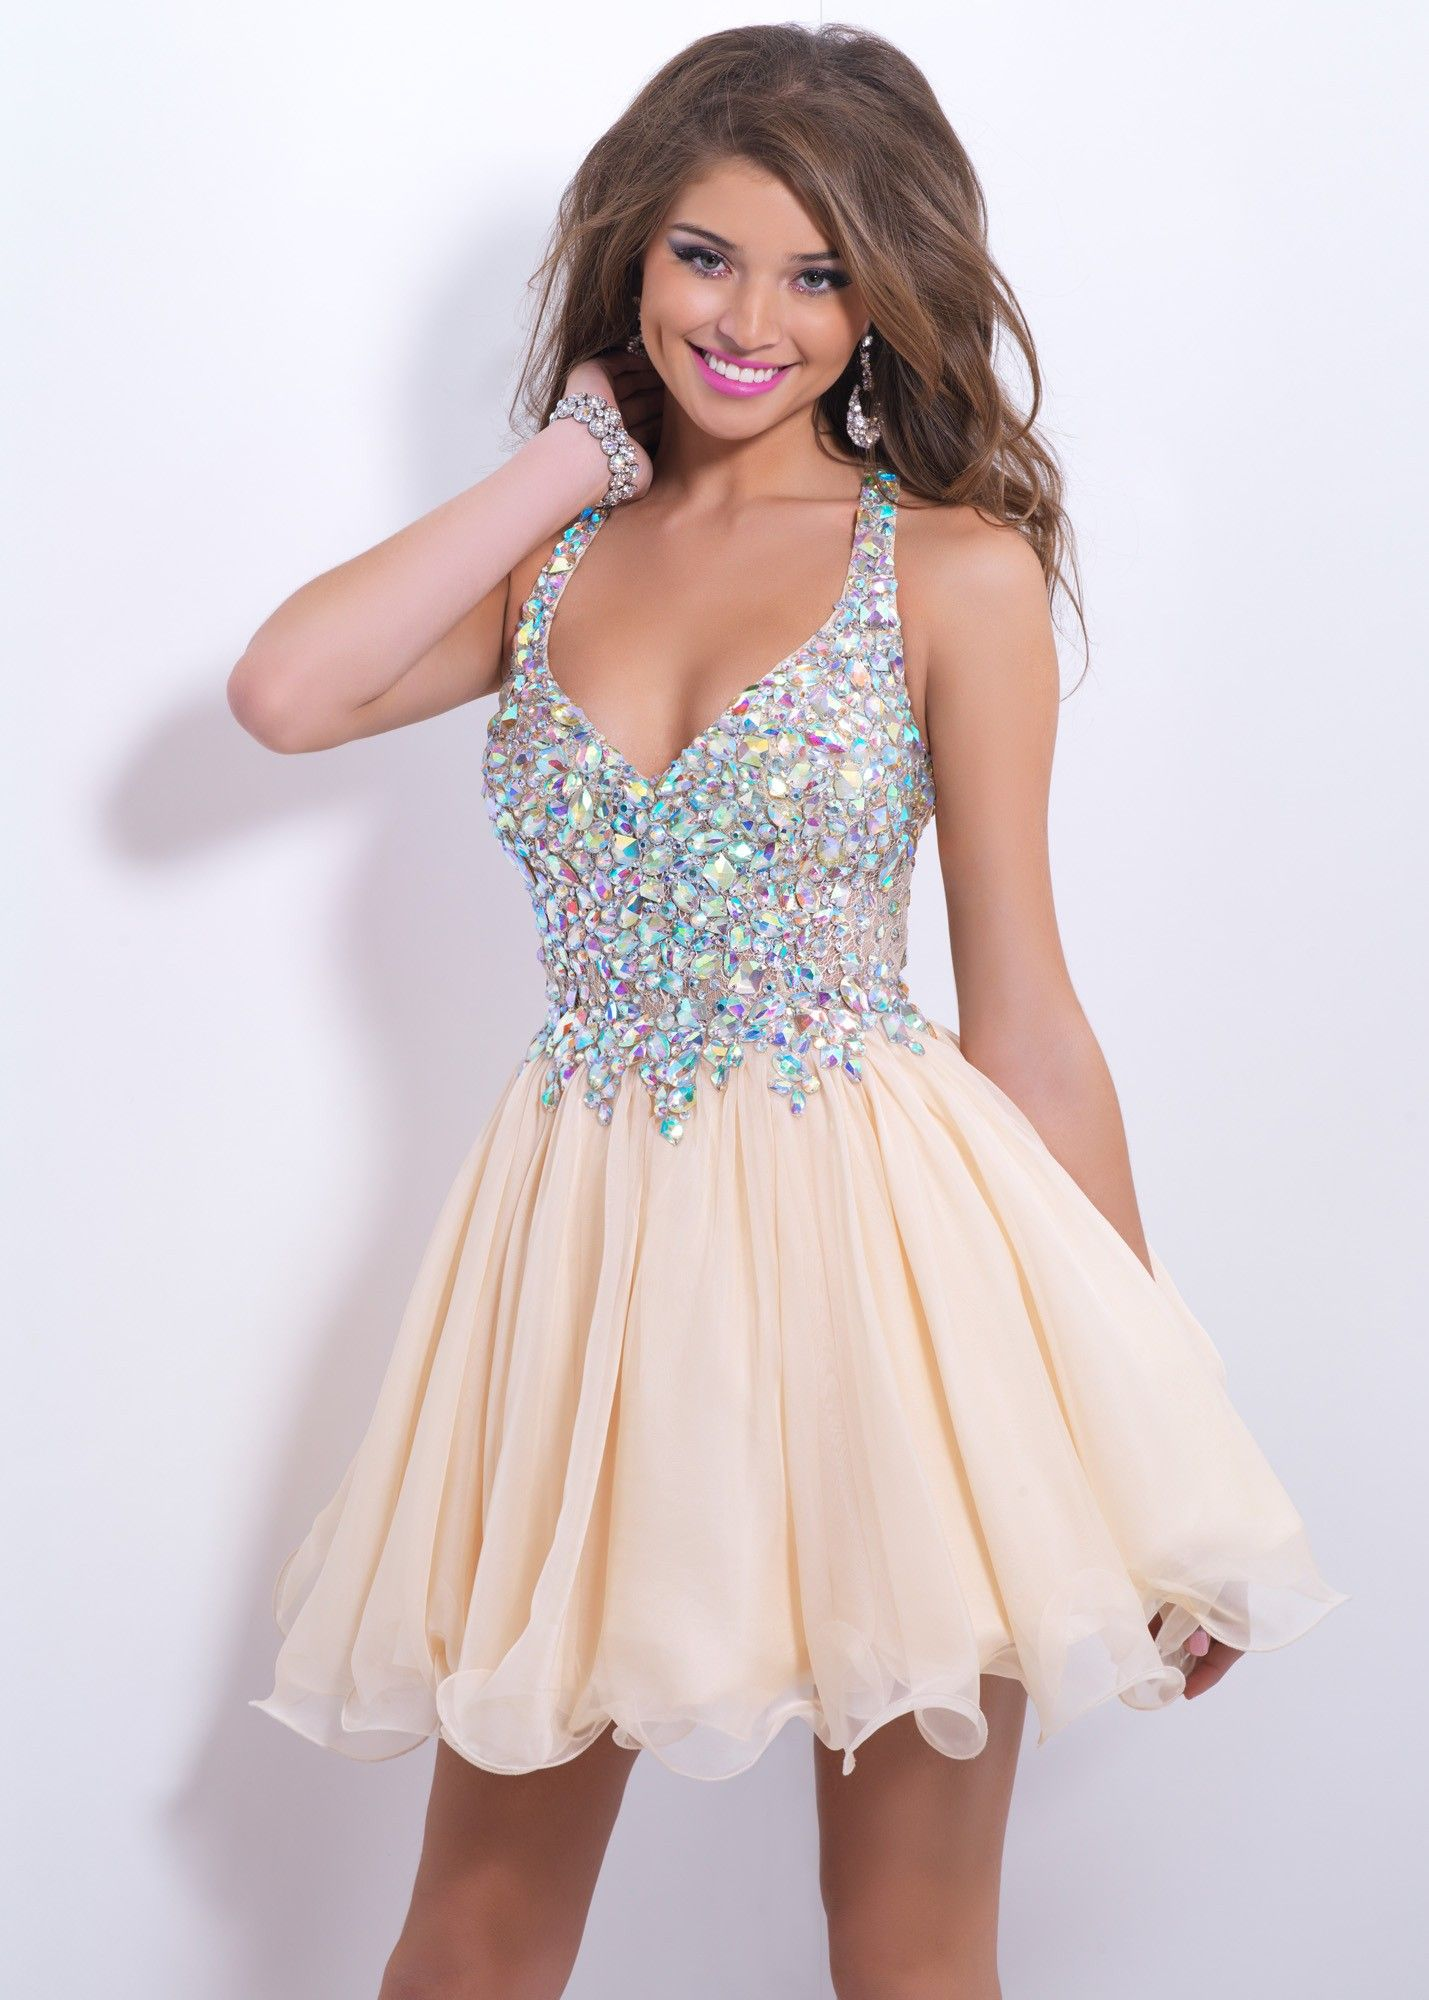 Blush Prom 9857 Sparkly Cocktail Dress - Crystals and jewels rock ...